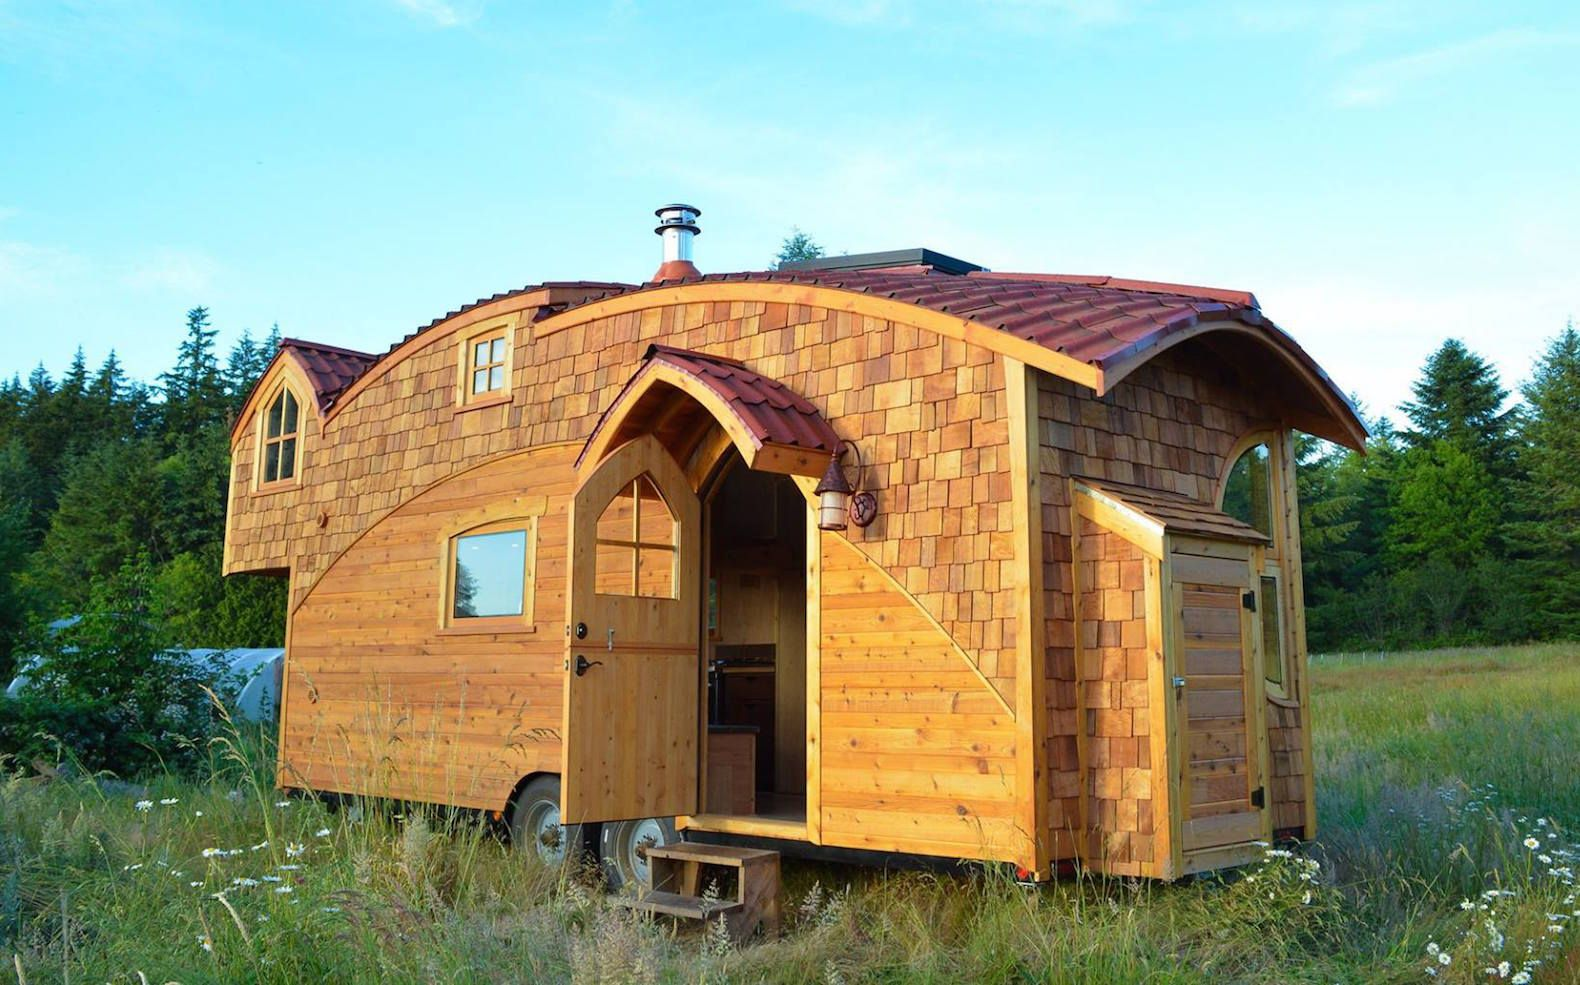 Stunning Moon Dragon is a fairytale like tiny house that goes off